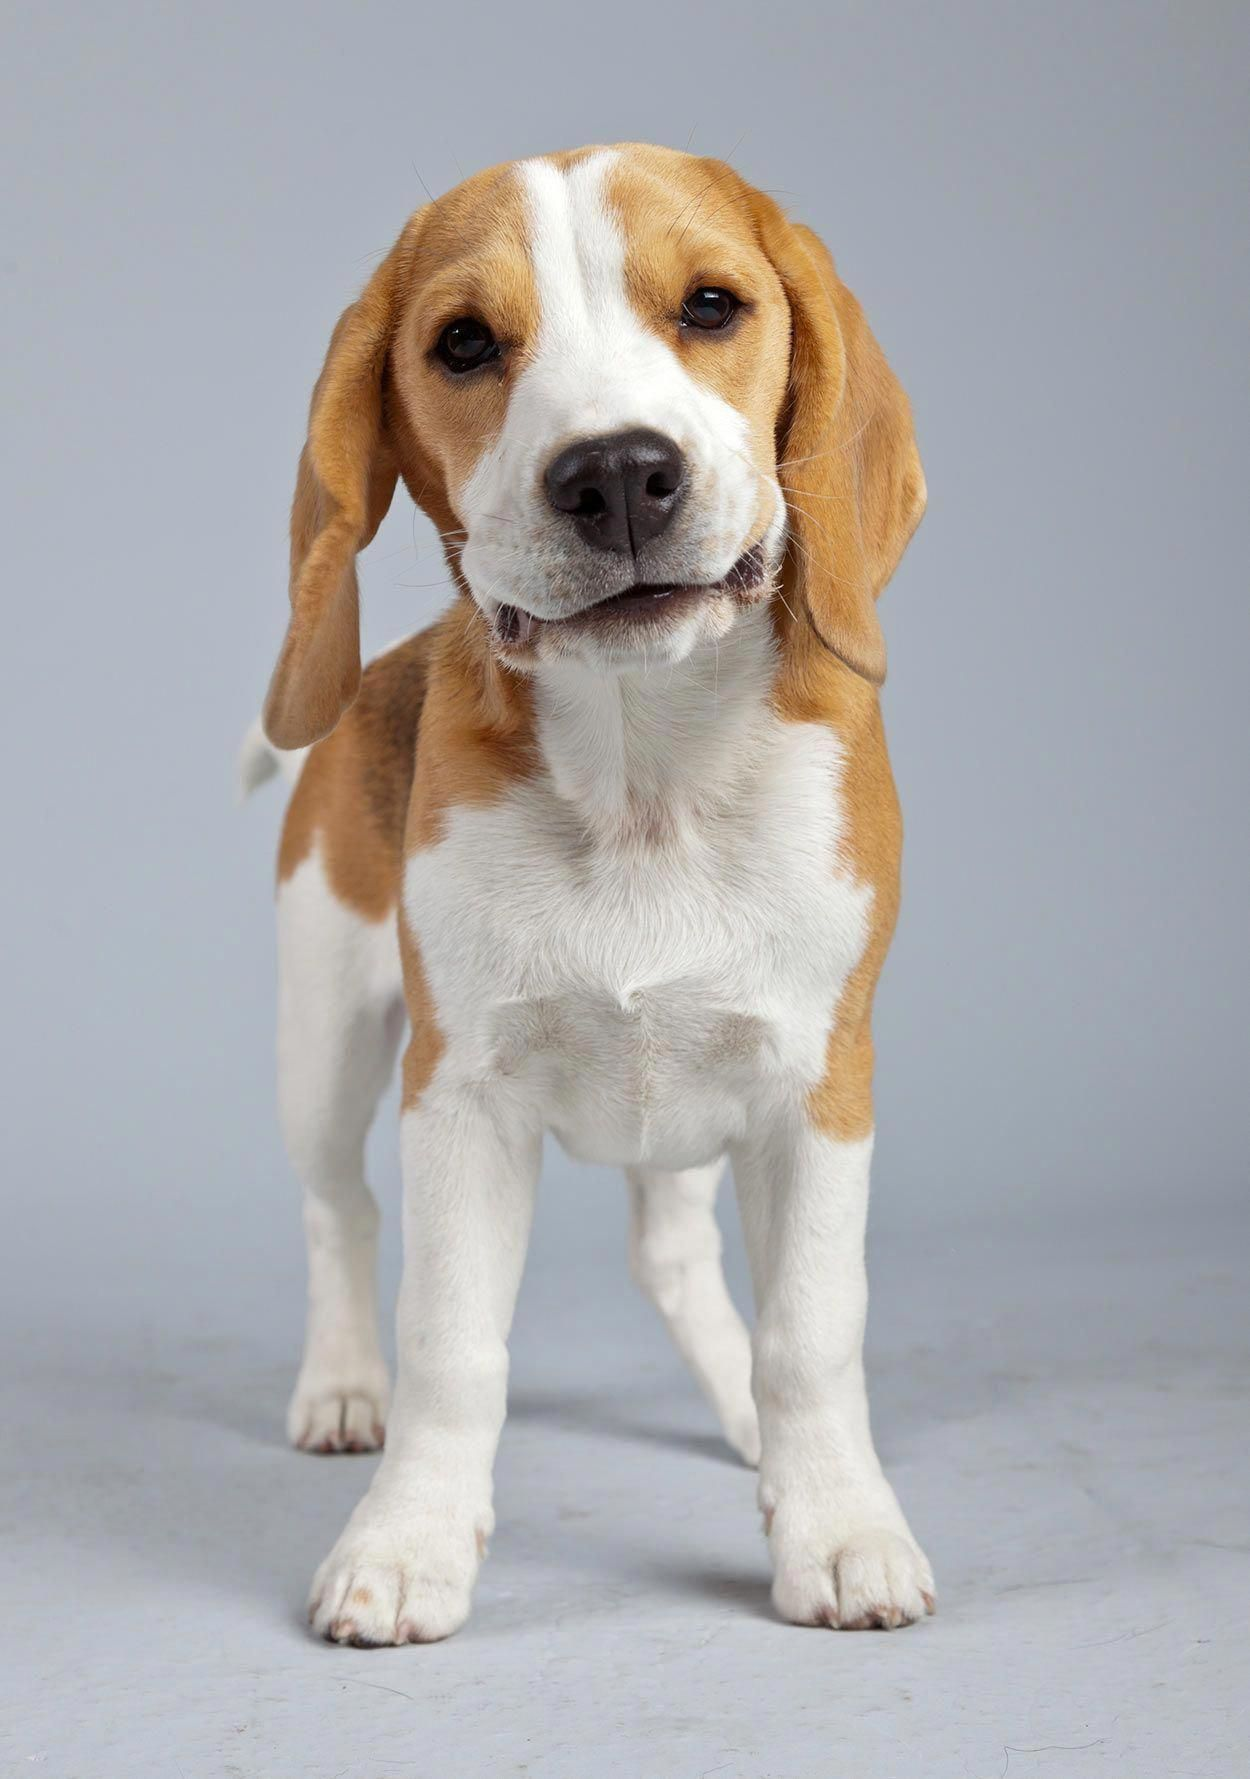 The Many Things I Admire About The Loving Beagle Puppy